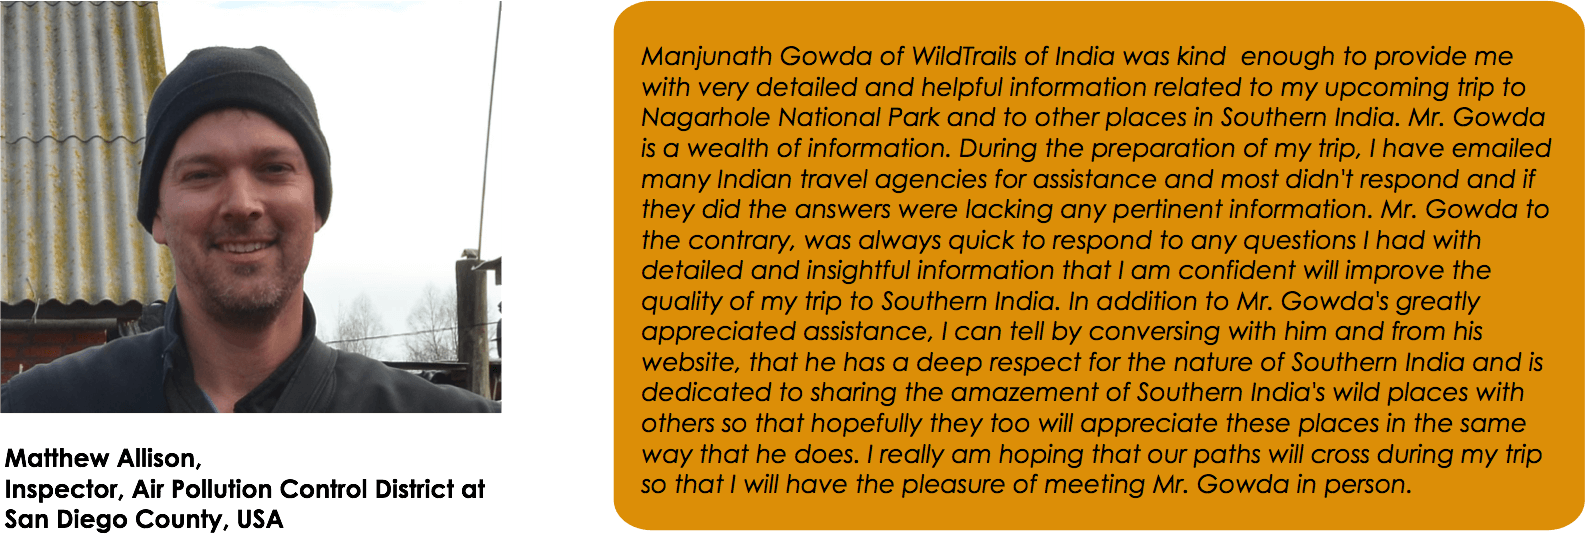 Manjunath Gowda of WildTrails of India was kind  enough to provide me with very detailed and helpful information related to my upcoming trip to Nagarhole National Park and to other places in Southern India. Mr. Gowda is a wealth of information. During the preparation of my trip, I have emailed many Indian travel agencies for assistance and most didn't respond and if they did the answers were lacking any pertinent information. Mr. Gowda to the contrary, was always quick to respond to any questions I had with detailed and insightful information that I am confident will improve the quality of my trip to Southern India. In addition to Mr. Gowda's greatly appreciated assistance, I can tell by conversing with him and from his website, that he has a deep respect for the nature of Southern India and is dedicated to sharing the amazement of Southern India's wild places with others so that hopefully they too will appreciate these places in the same way that he does. I really am hoping that our paths will cross during my trip so that I will have the pleasure of meeting Mr. Gowda in person.Matthew Allison, Inspector, Air Pollution Control District at San Diego County, USA